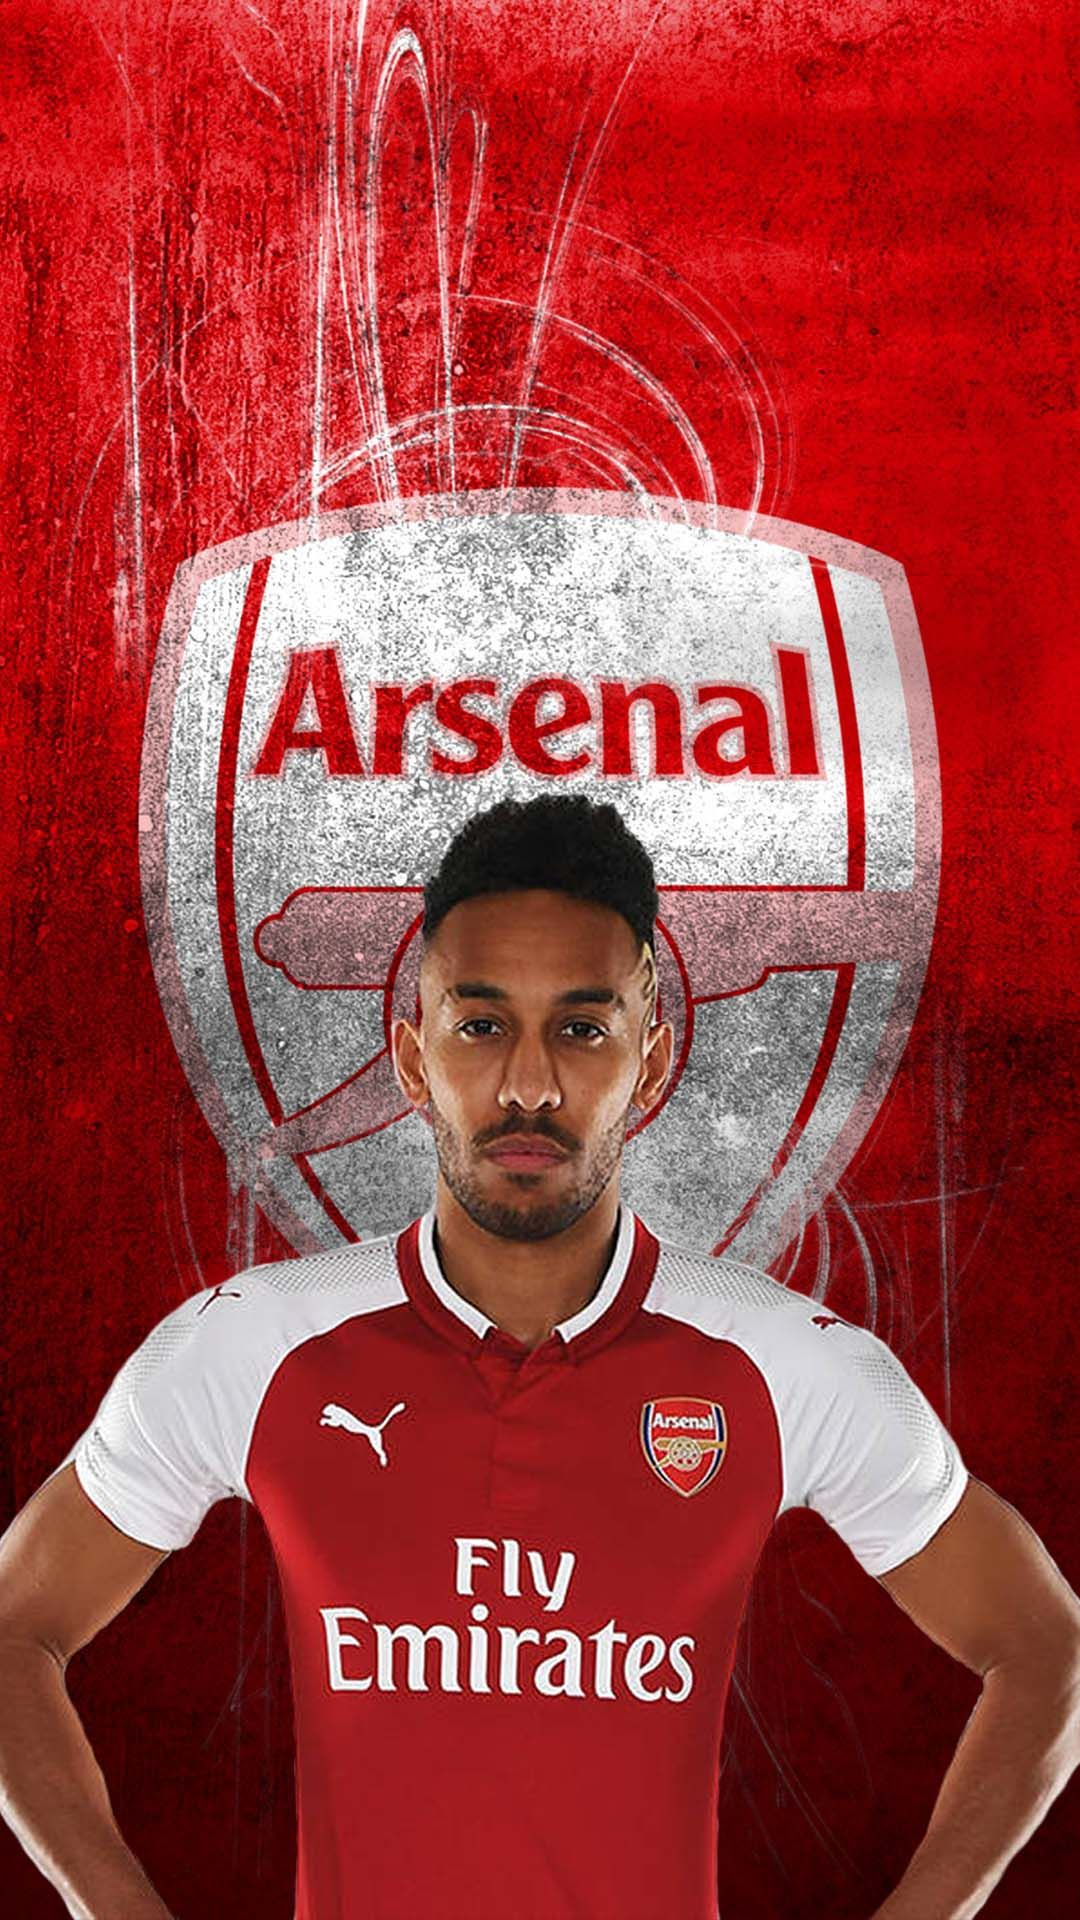 4b4dcebb2 Aubameyang Arsenal Android Wallpaper - Best Android Wallpapers ...